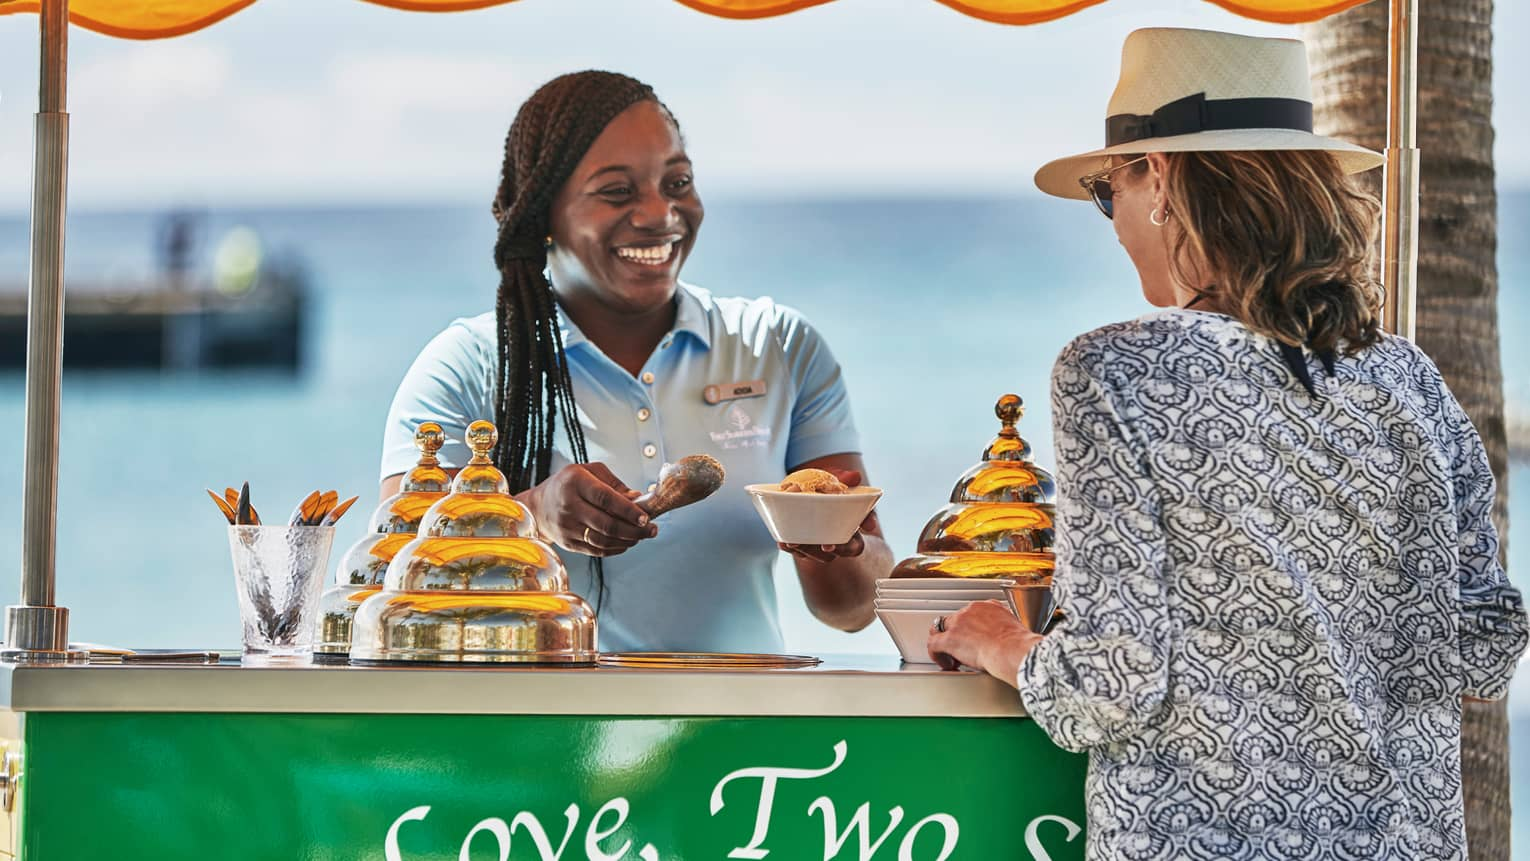 Smiling hotel staff scoops ice cream into dish for guest at beach stand